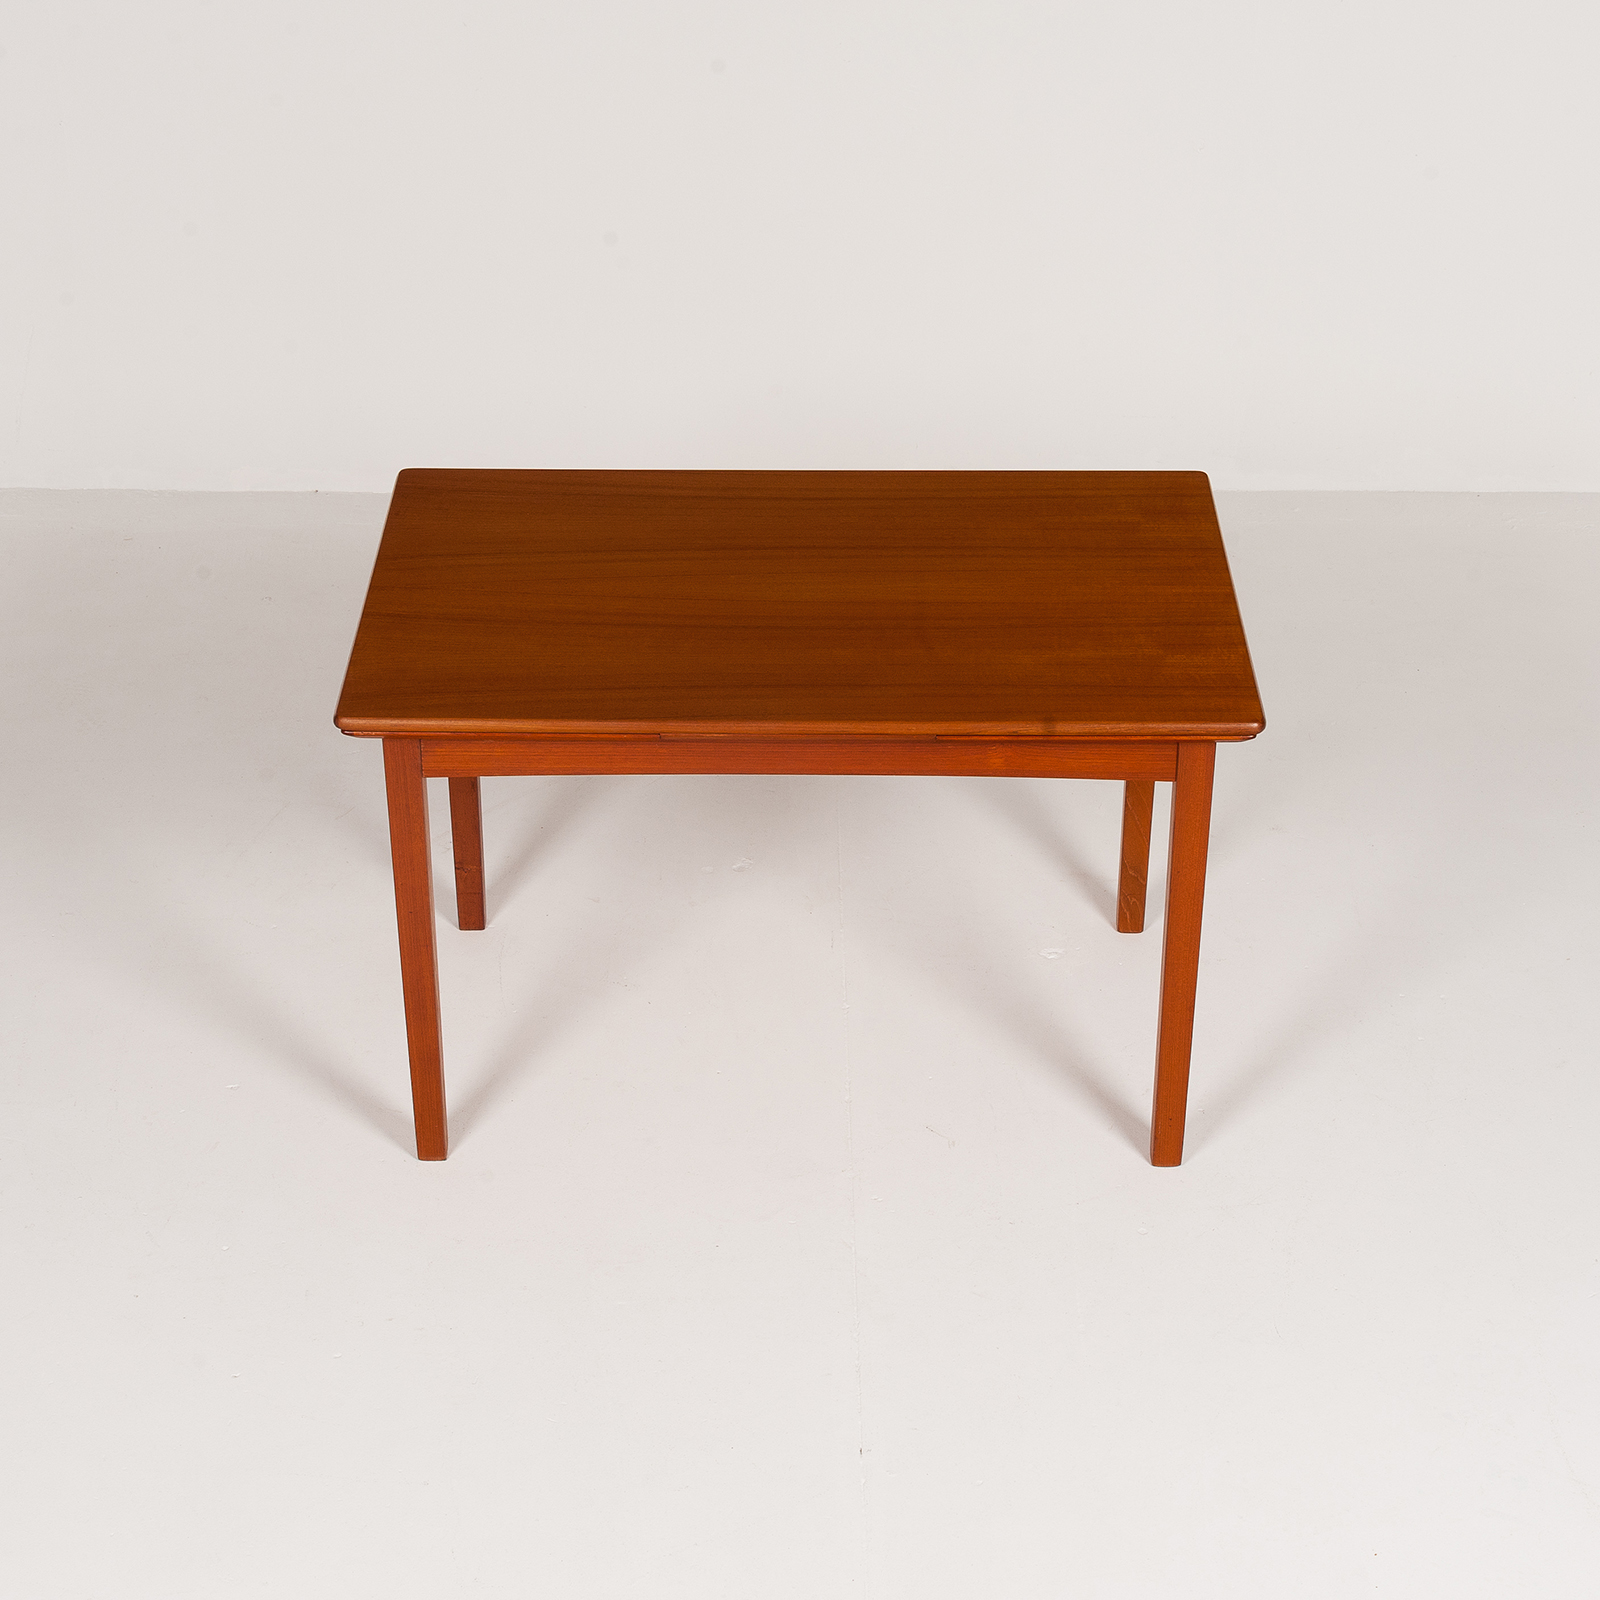 Rectangular Extension Dining Table In Teak With Square Legs, 1960s, Denmark6003